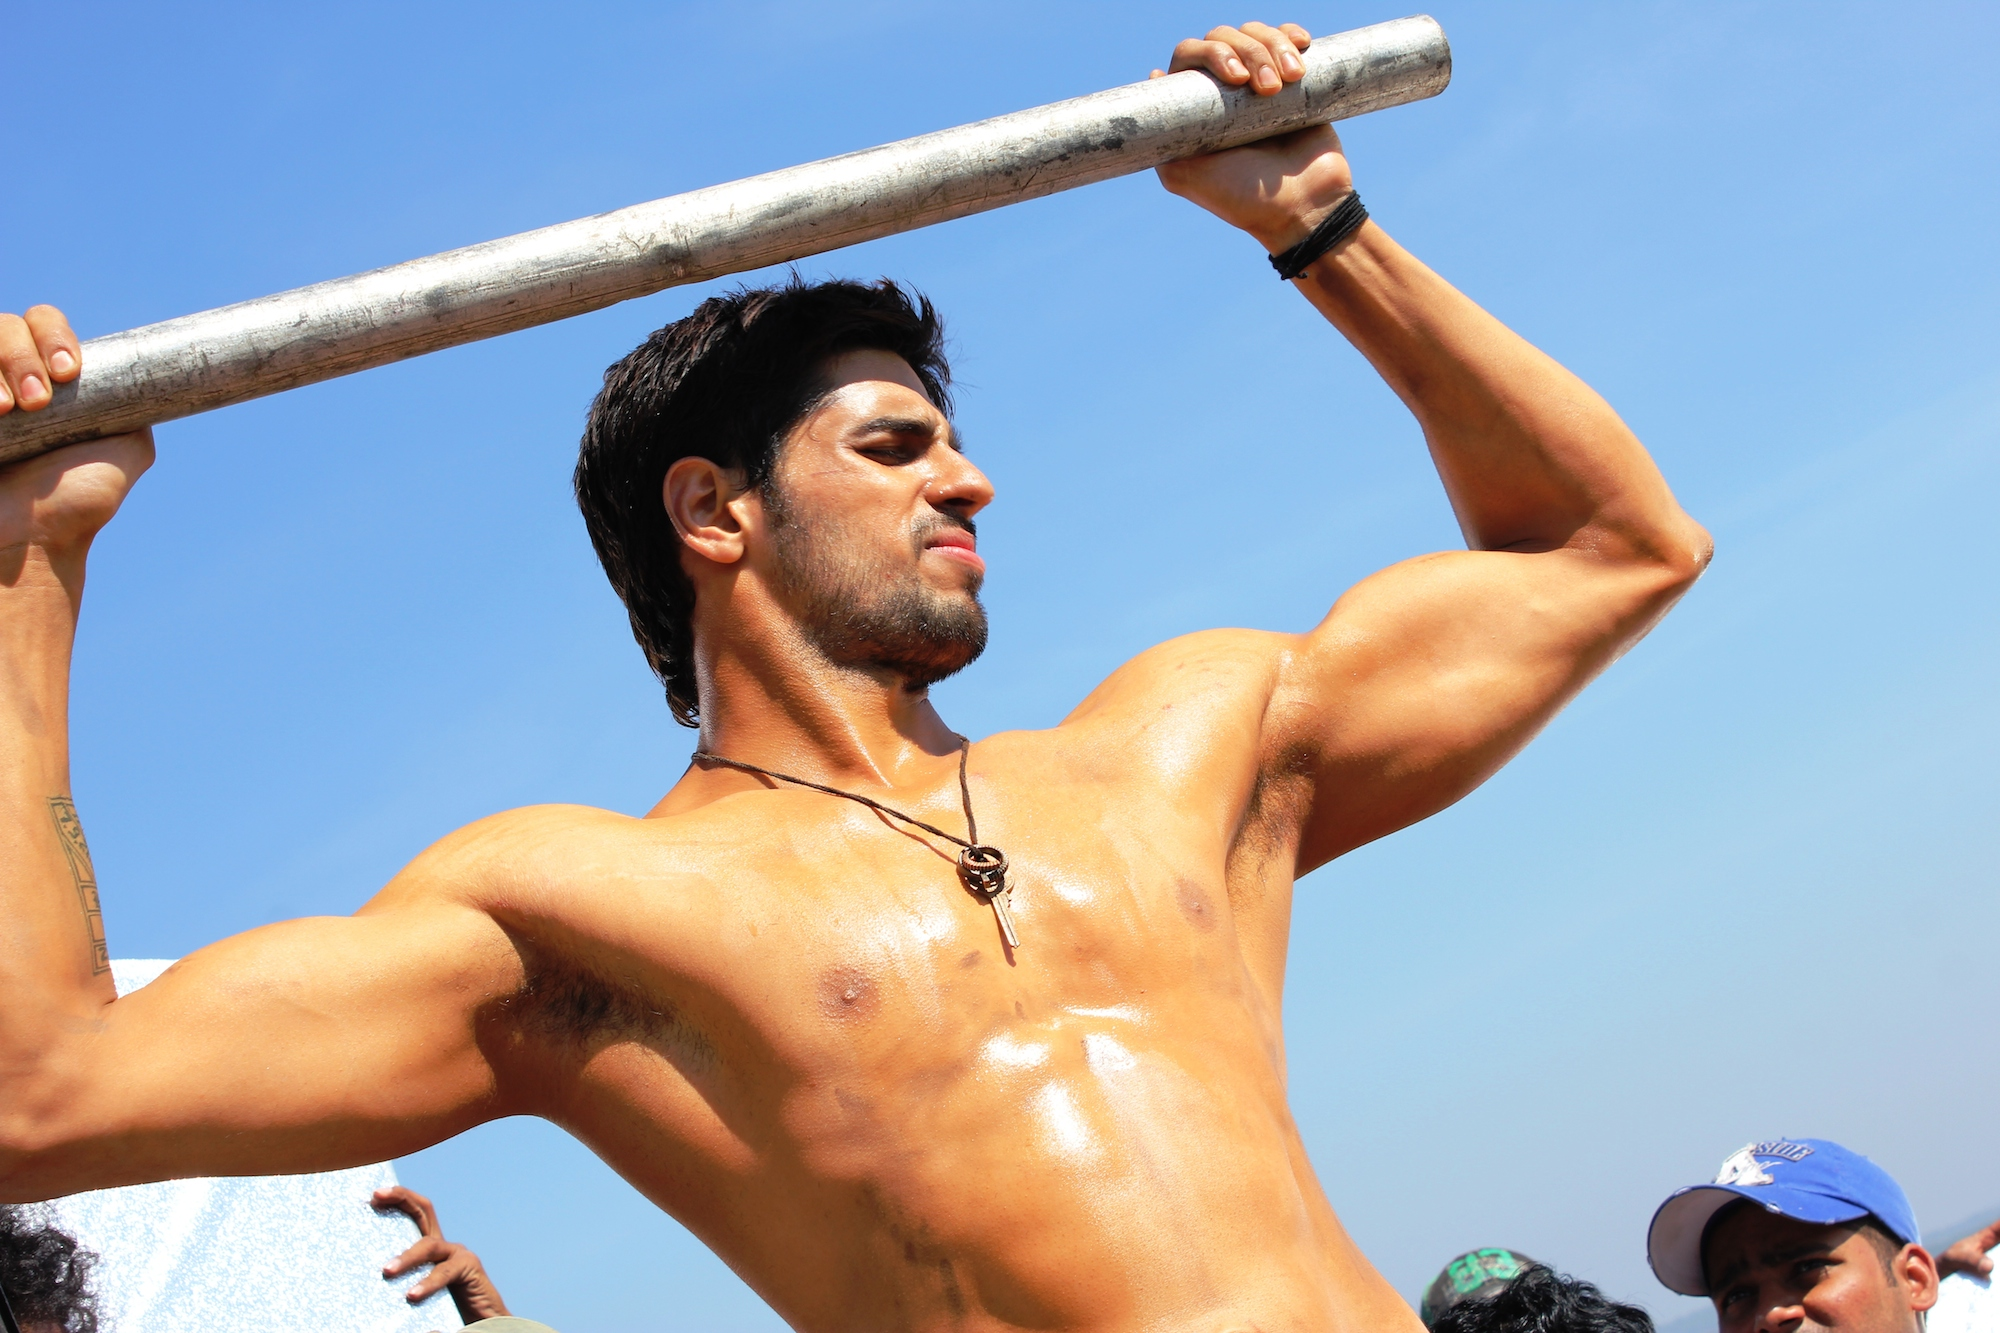 sid bare body Sidharth Malhotra turns Action Hero with Ek Villain